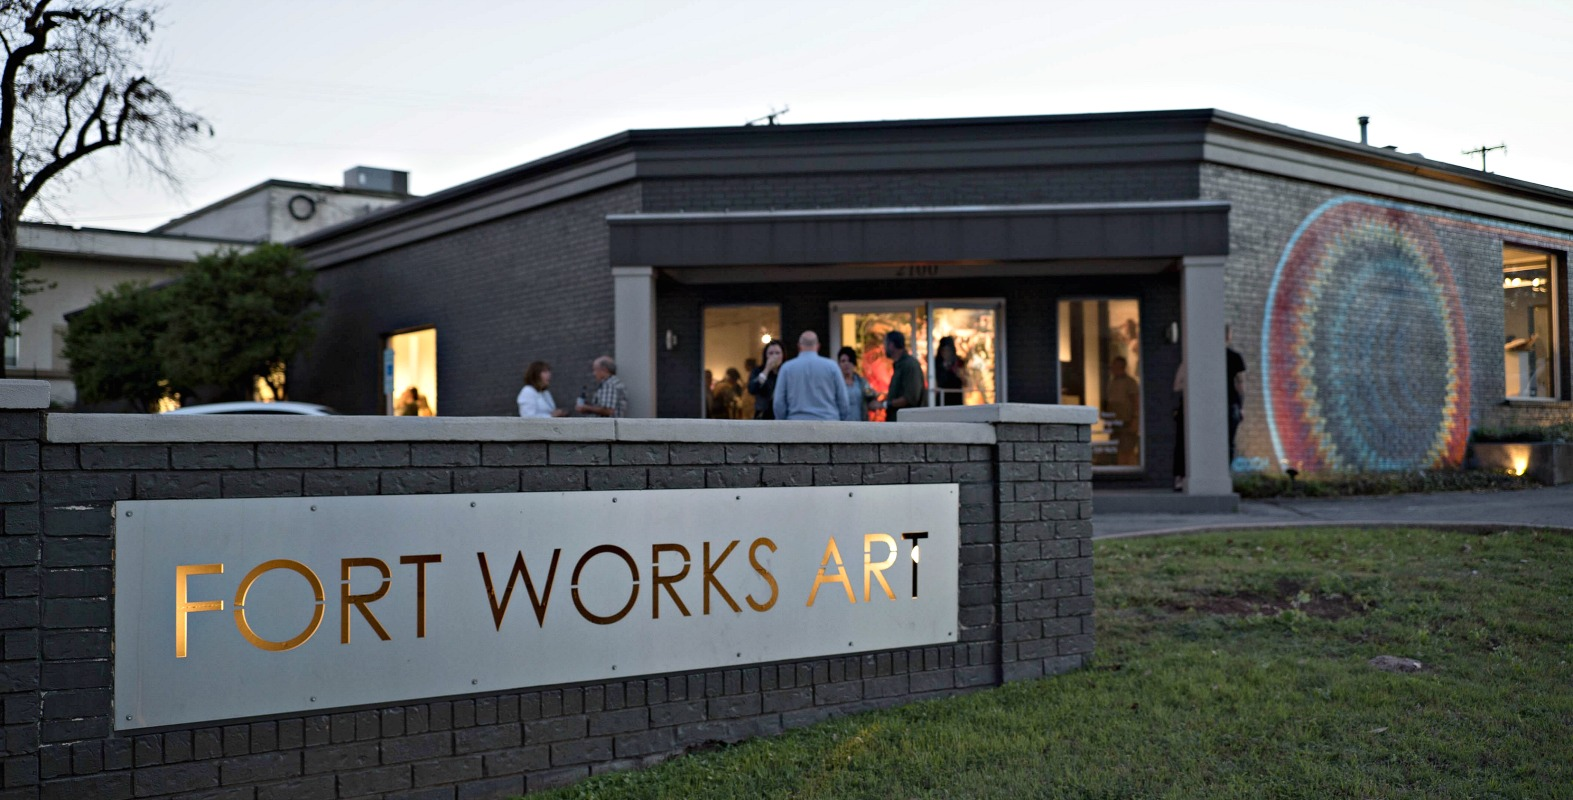 Fort Works Art in Fort Worth, North Texas